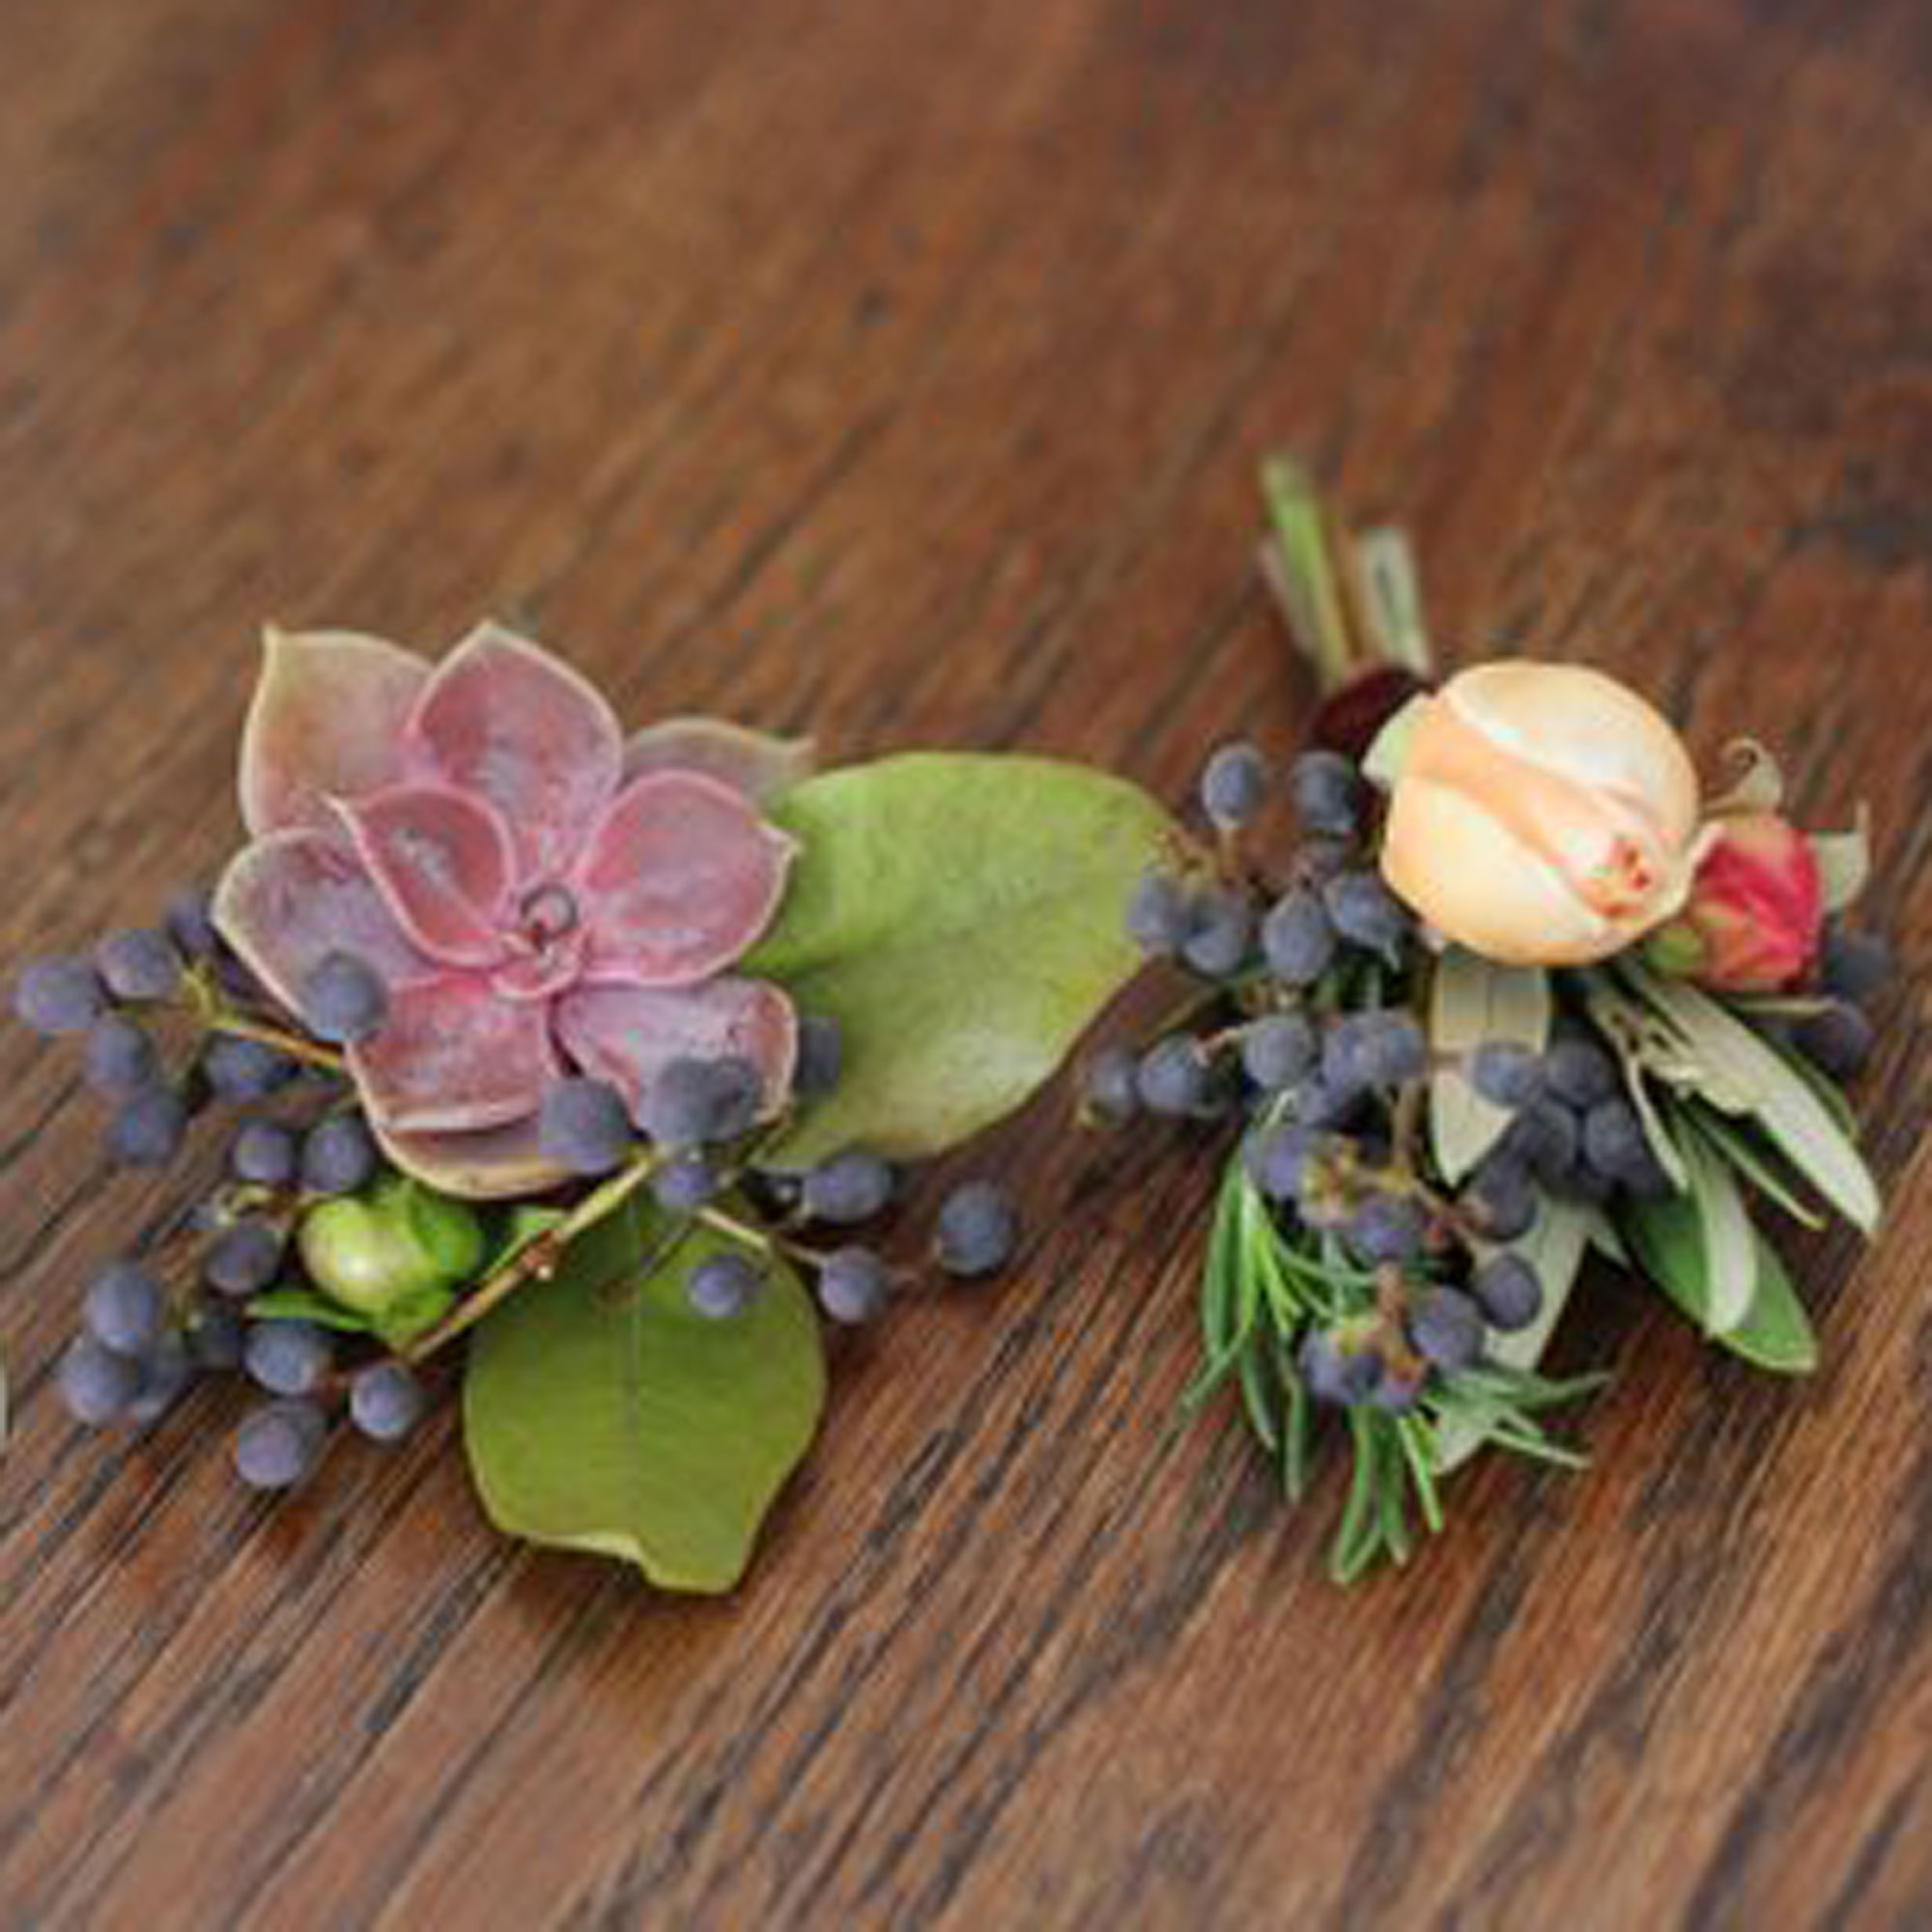 Suit up your groom and groomsmen in style with these creative buds berries izmirmasajfo